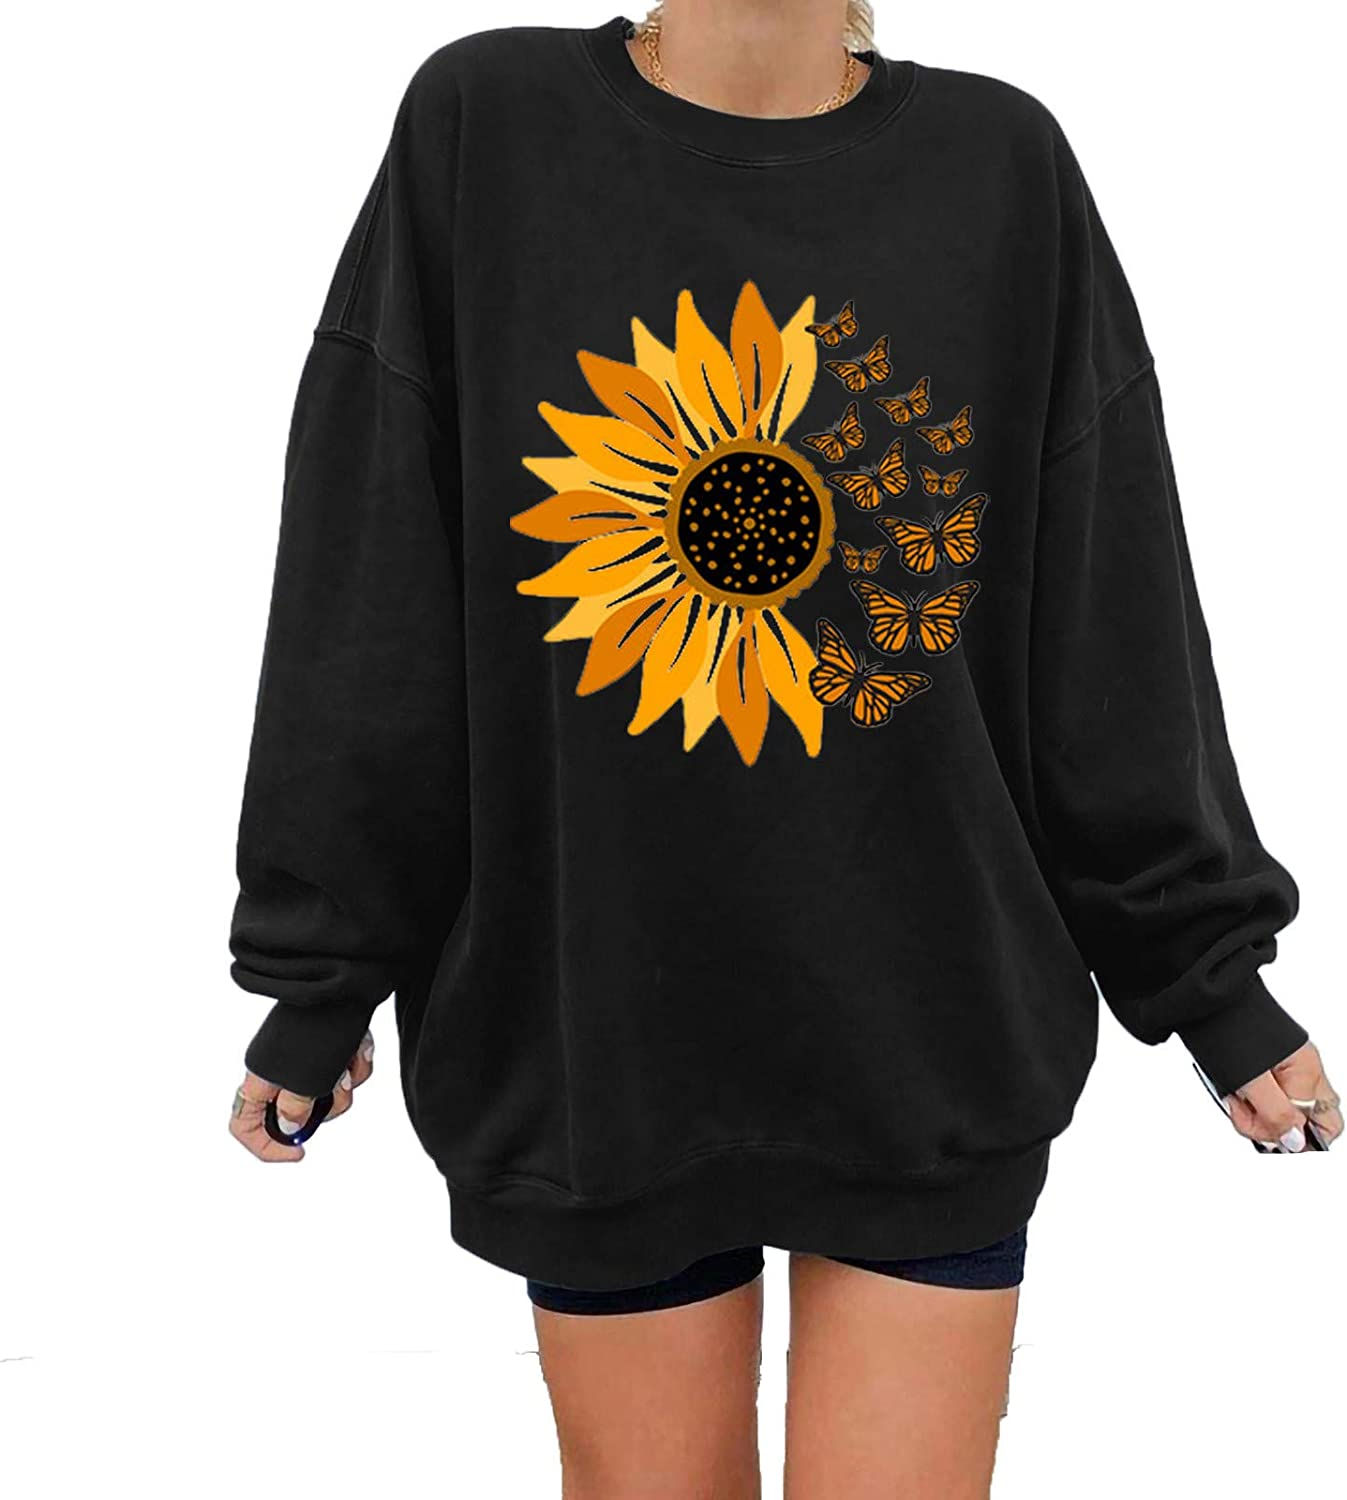 Forwelly Tunic Sweatshirt for Women Crewneck Casual Loose Long Sleeve T Shirt Cute Sunflower Print Pullover Top